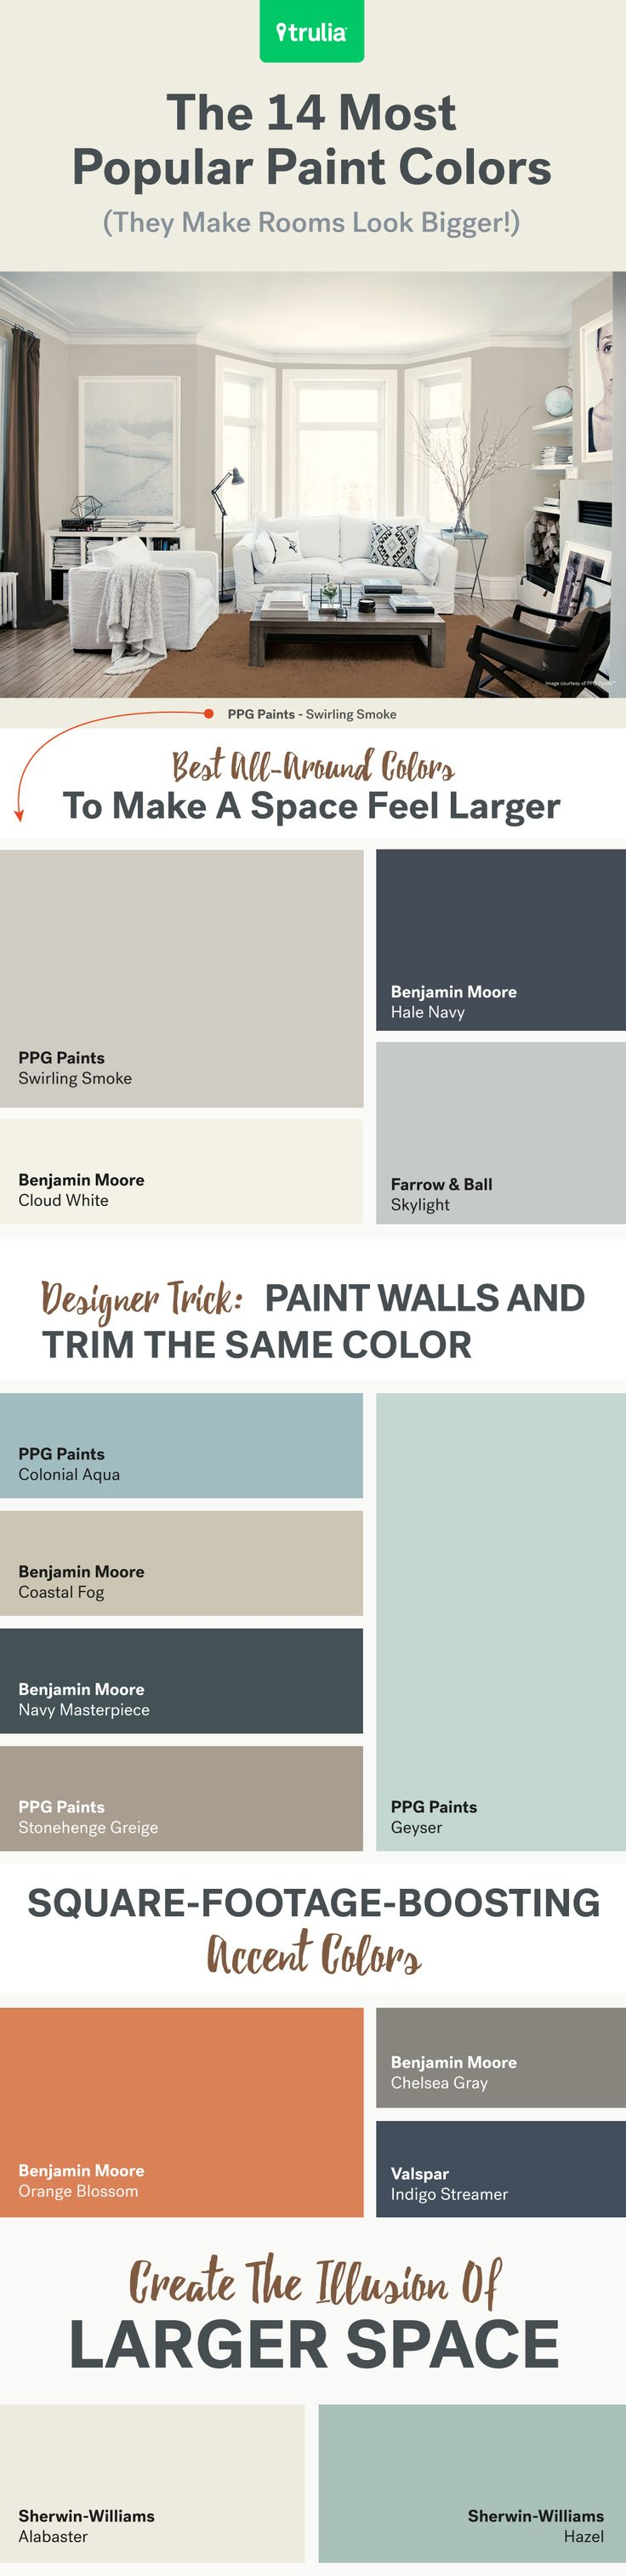 720 best Favorite Paint Colors images on Pinterest